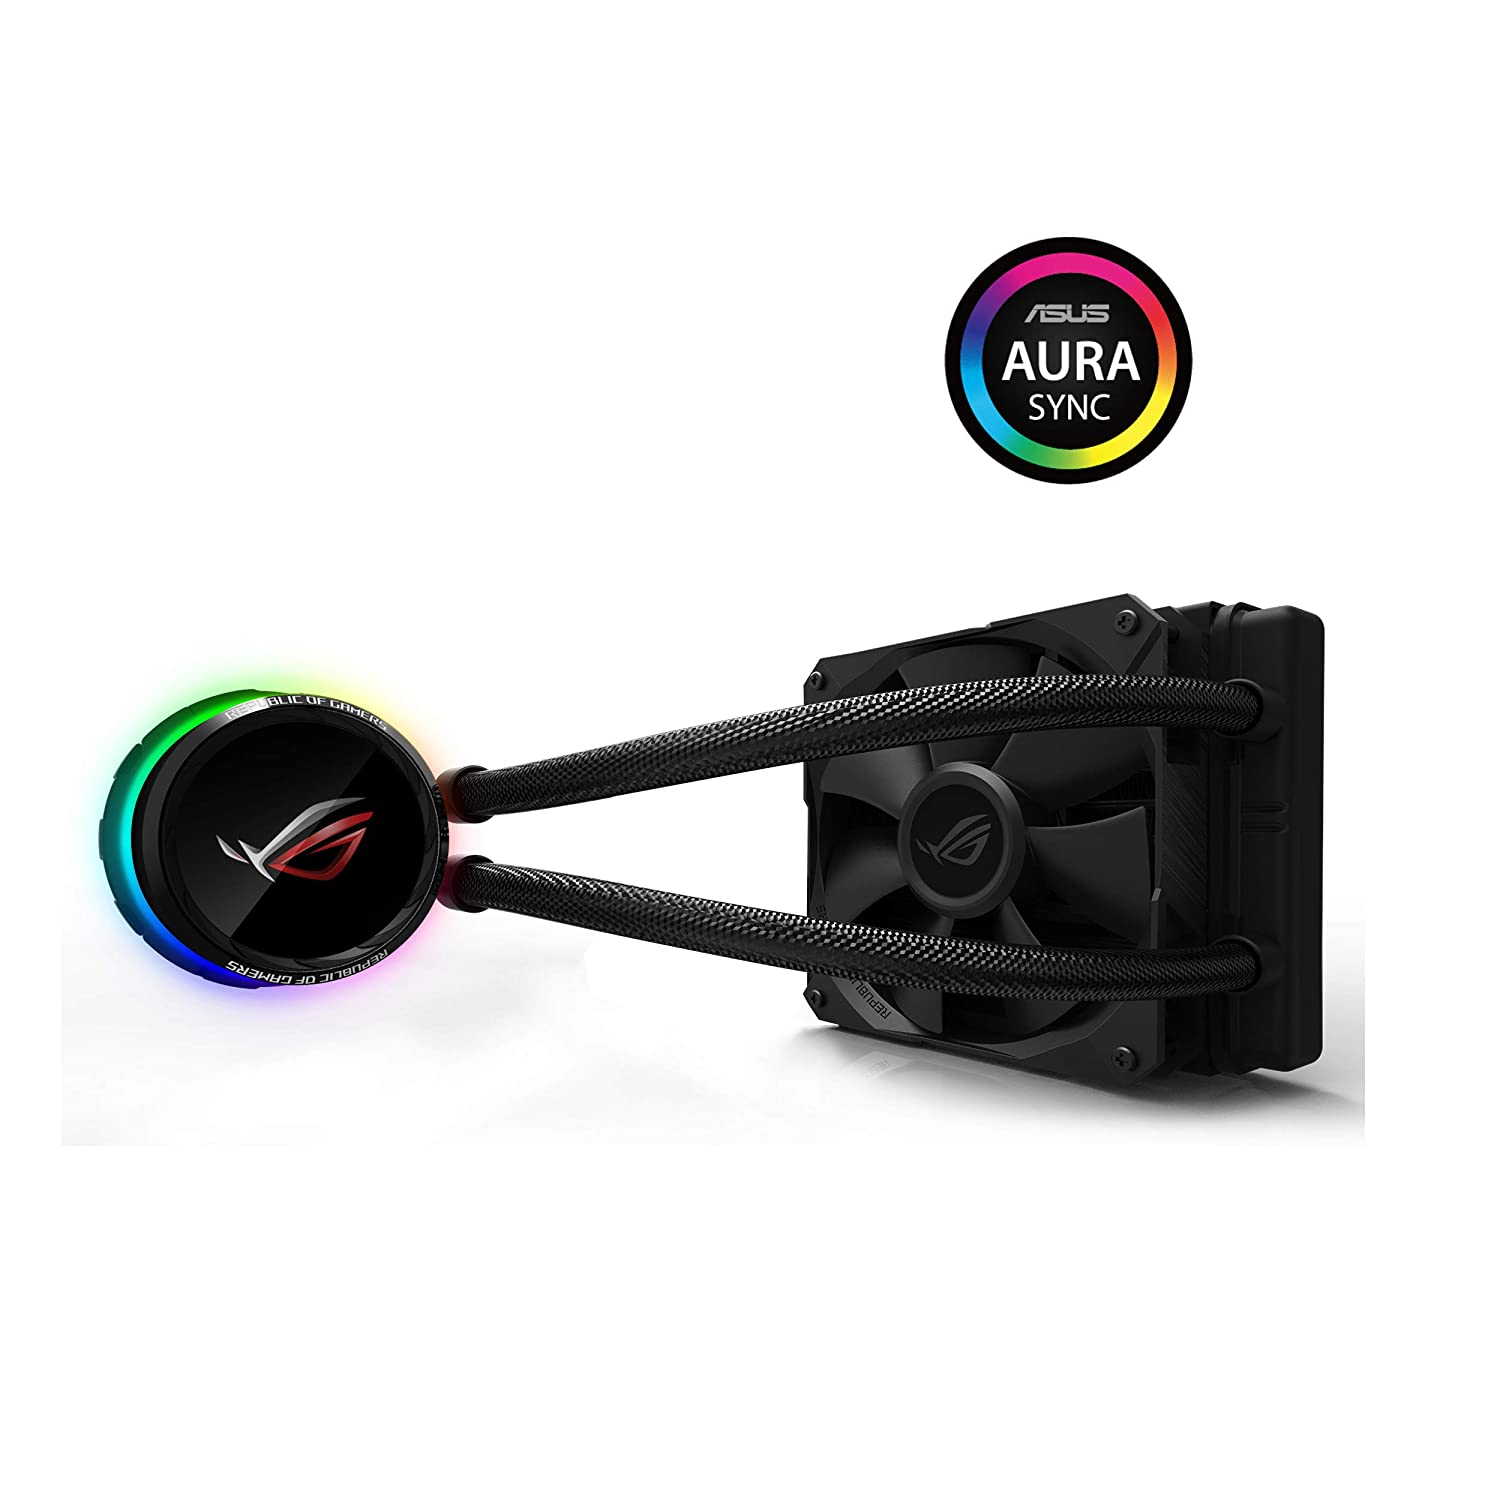 ASUS ROG Ryuo 120 CPU Cooler with OLED Display and Aura Sync - Black